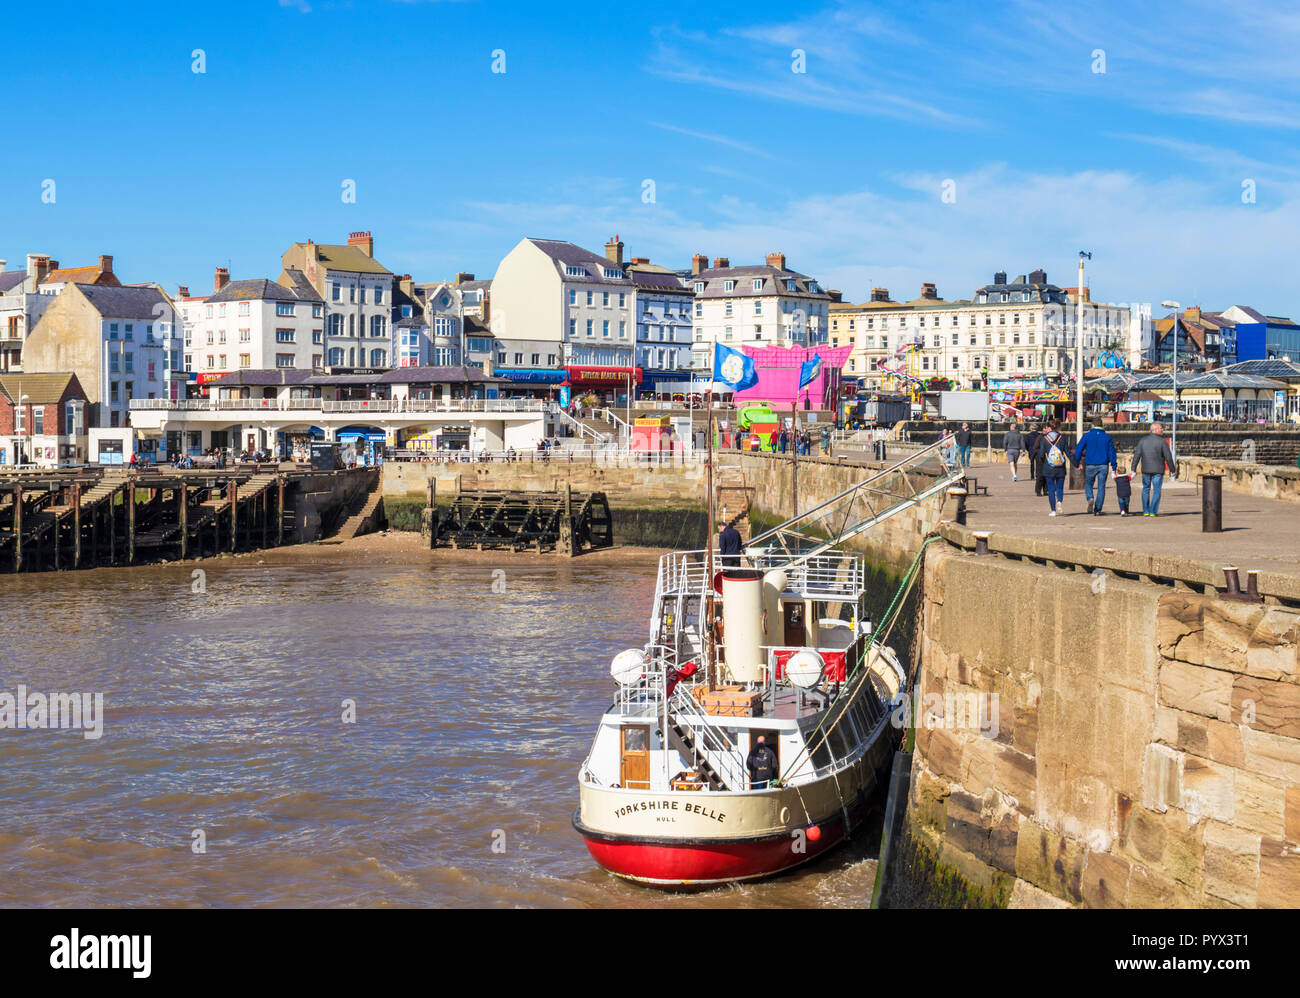 Bridlington marina e porto di Bridlington Yorkshire Belle piacere cruiser Porto BridlingtonEast parete Riding dello Yorkshire England Regno Unito GB Europa Immagini Stock